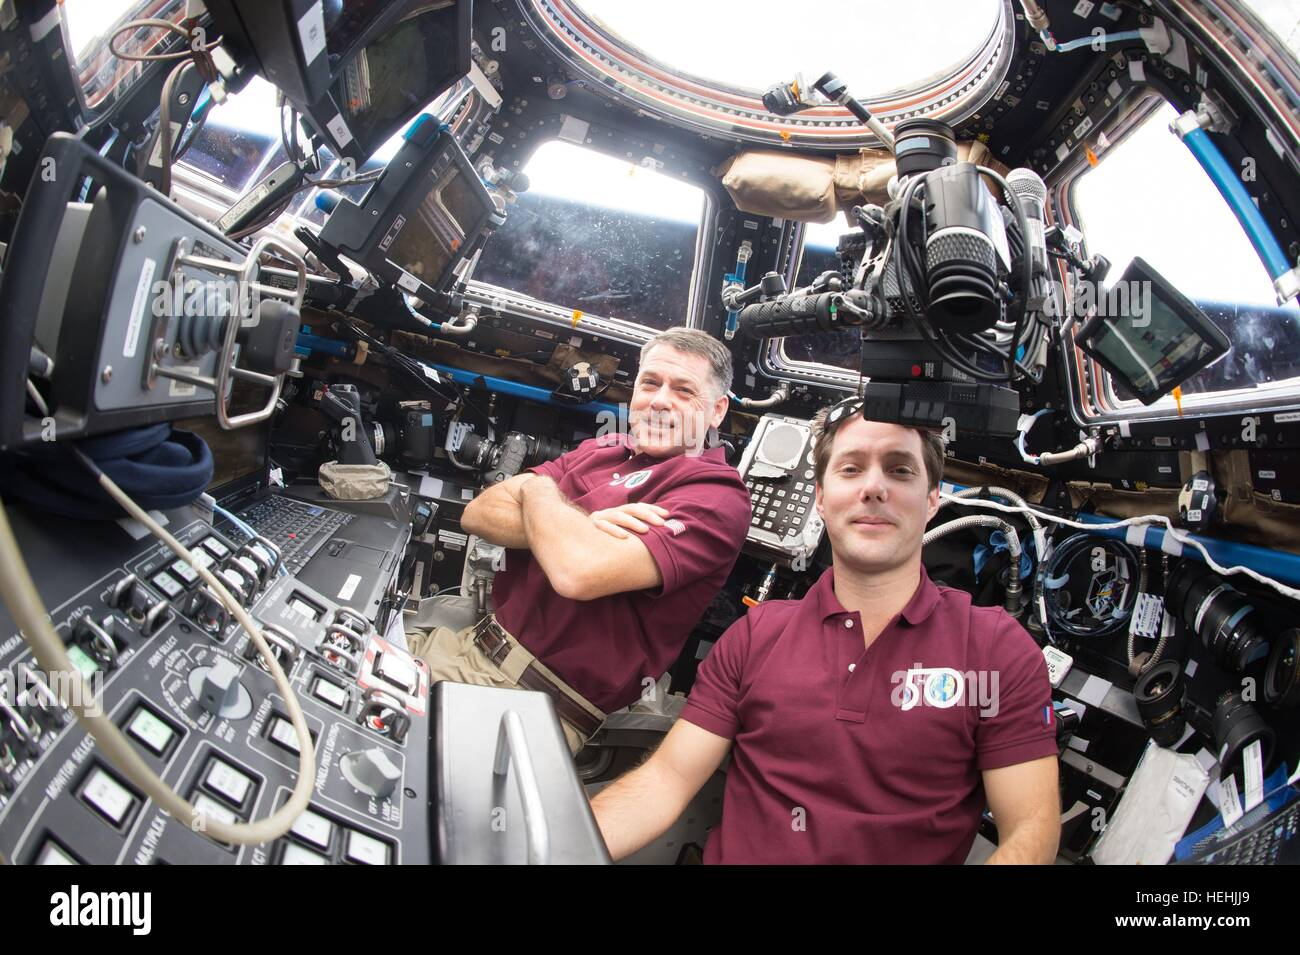 NASA Expedition 50 prime crew members astronaut Shane Kimbrough (back) and French astronaut Thomas Pesquet of the - Stock Image